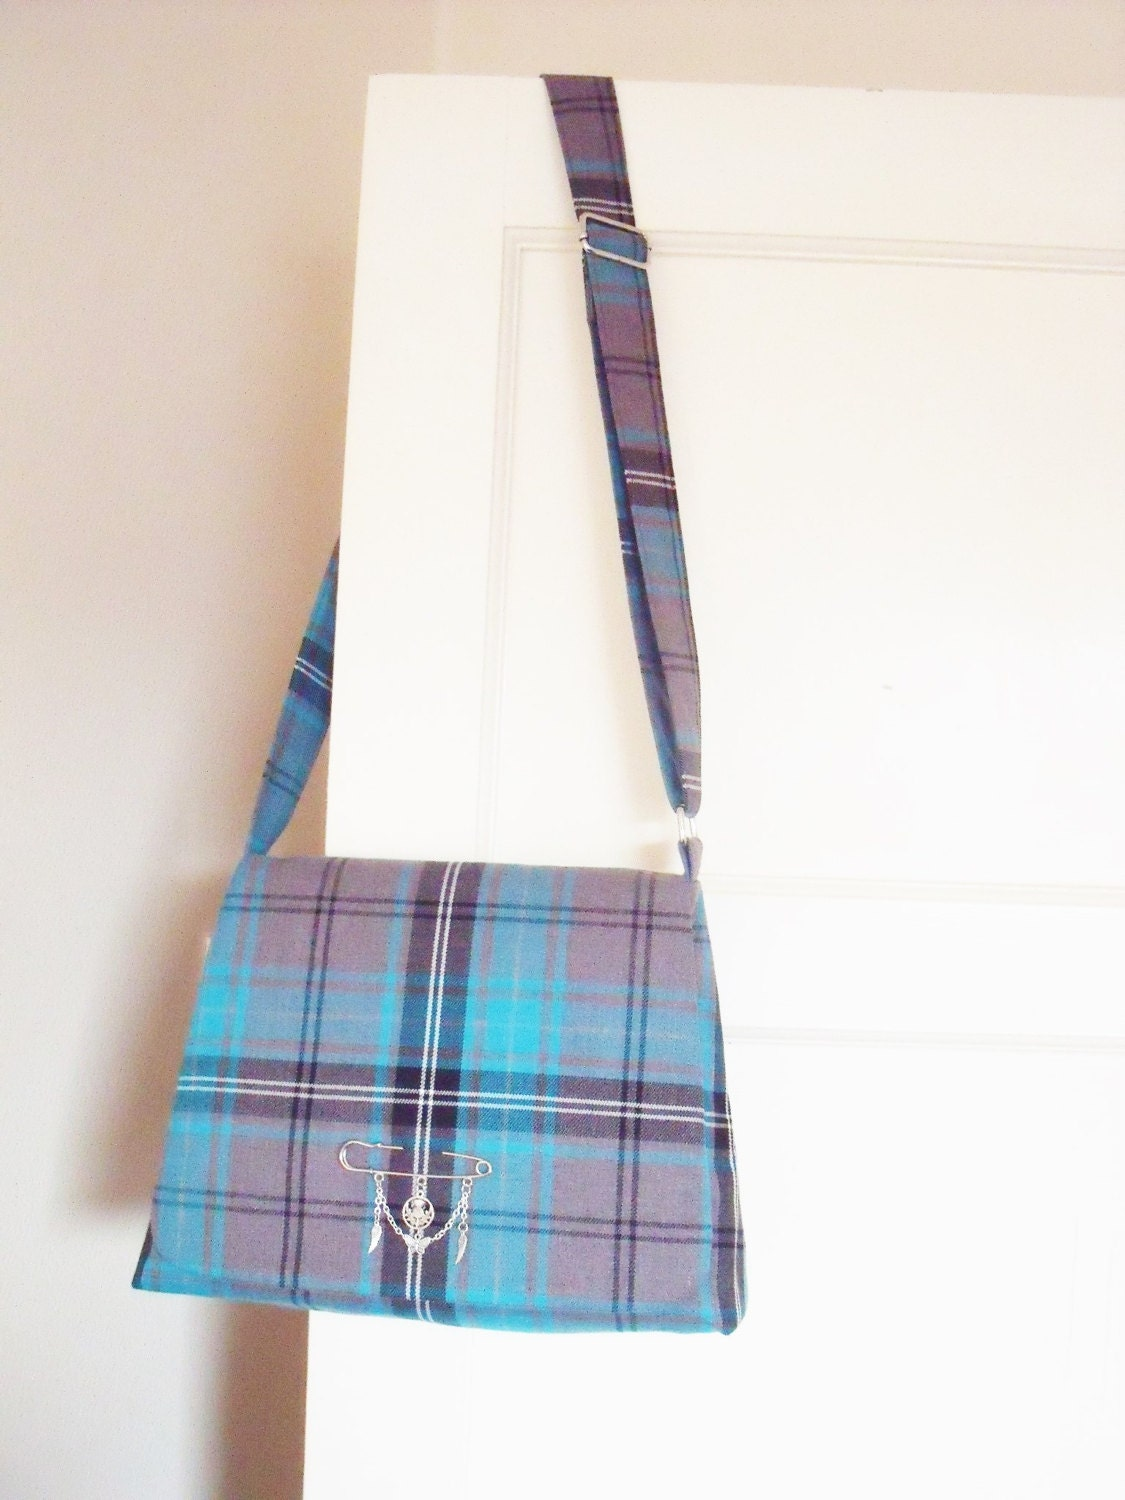 Tartan Messenger Bag in shades of Turquoise Grey  Black fabric Cross body Shoulder Bag Plaid Purse kilt pin brooch Handmade in Scotland